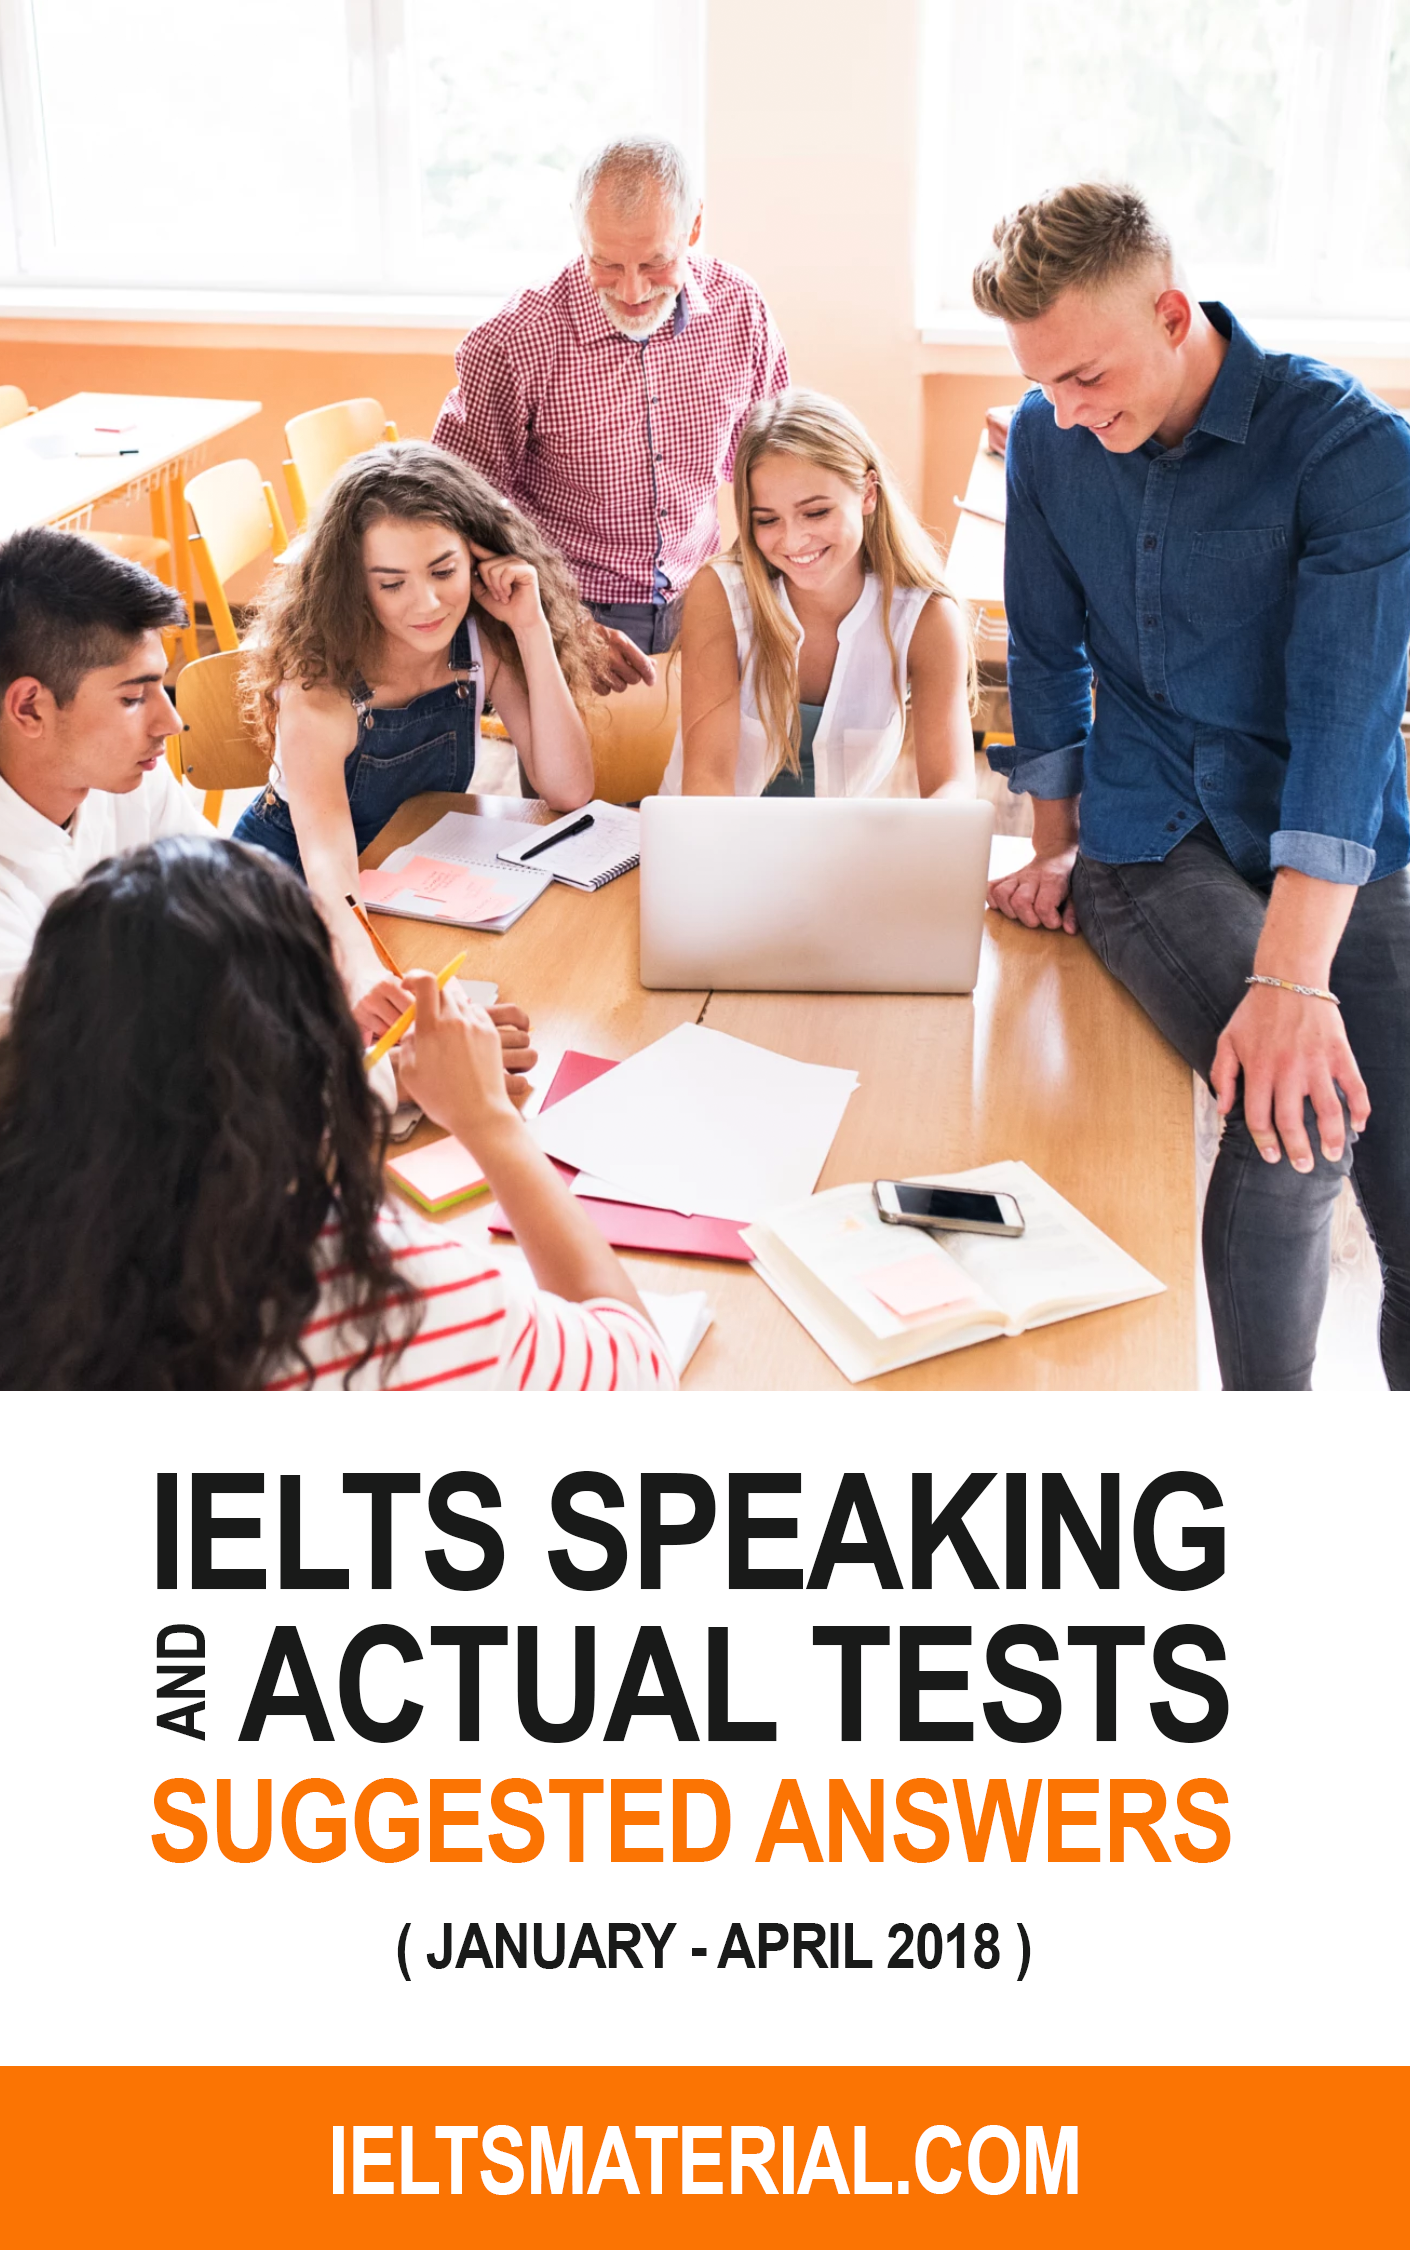 ielts speaking part 3 questions and answers pdf 2018